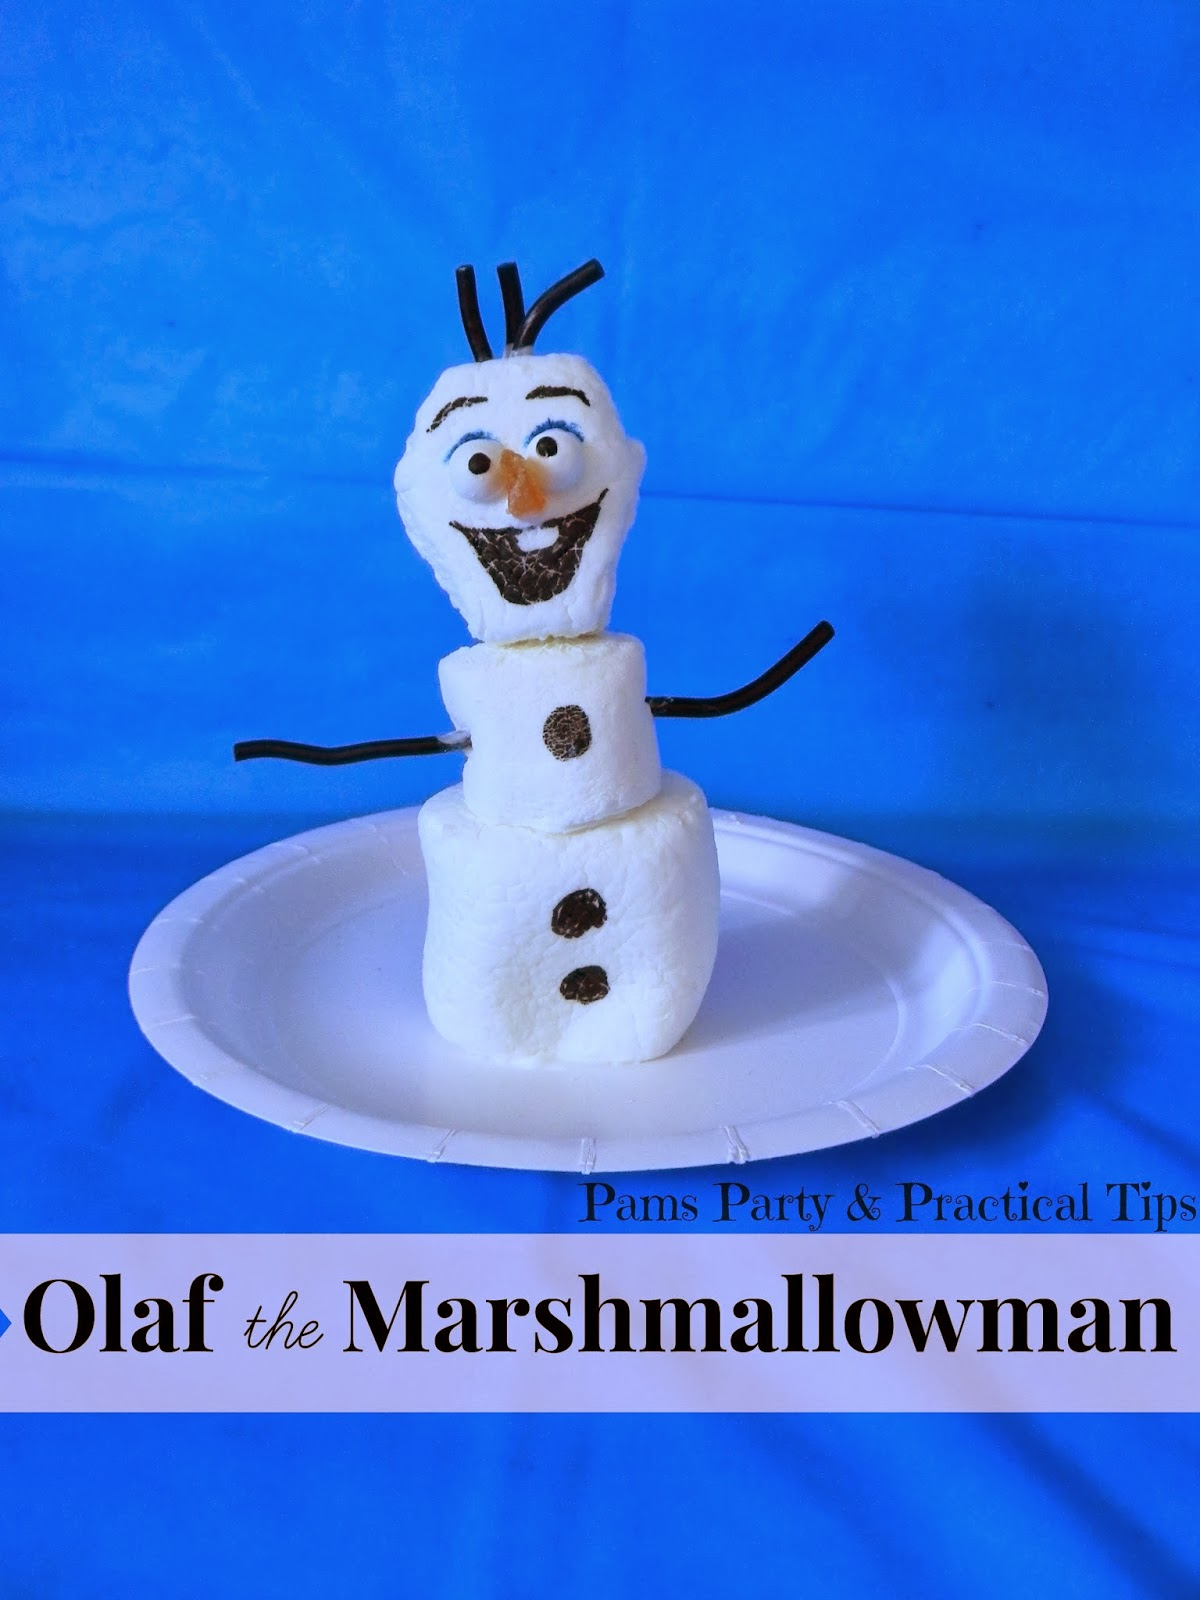 Olaf the Snowman made from marshmallows